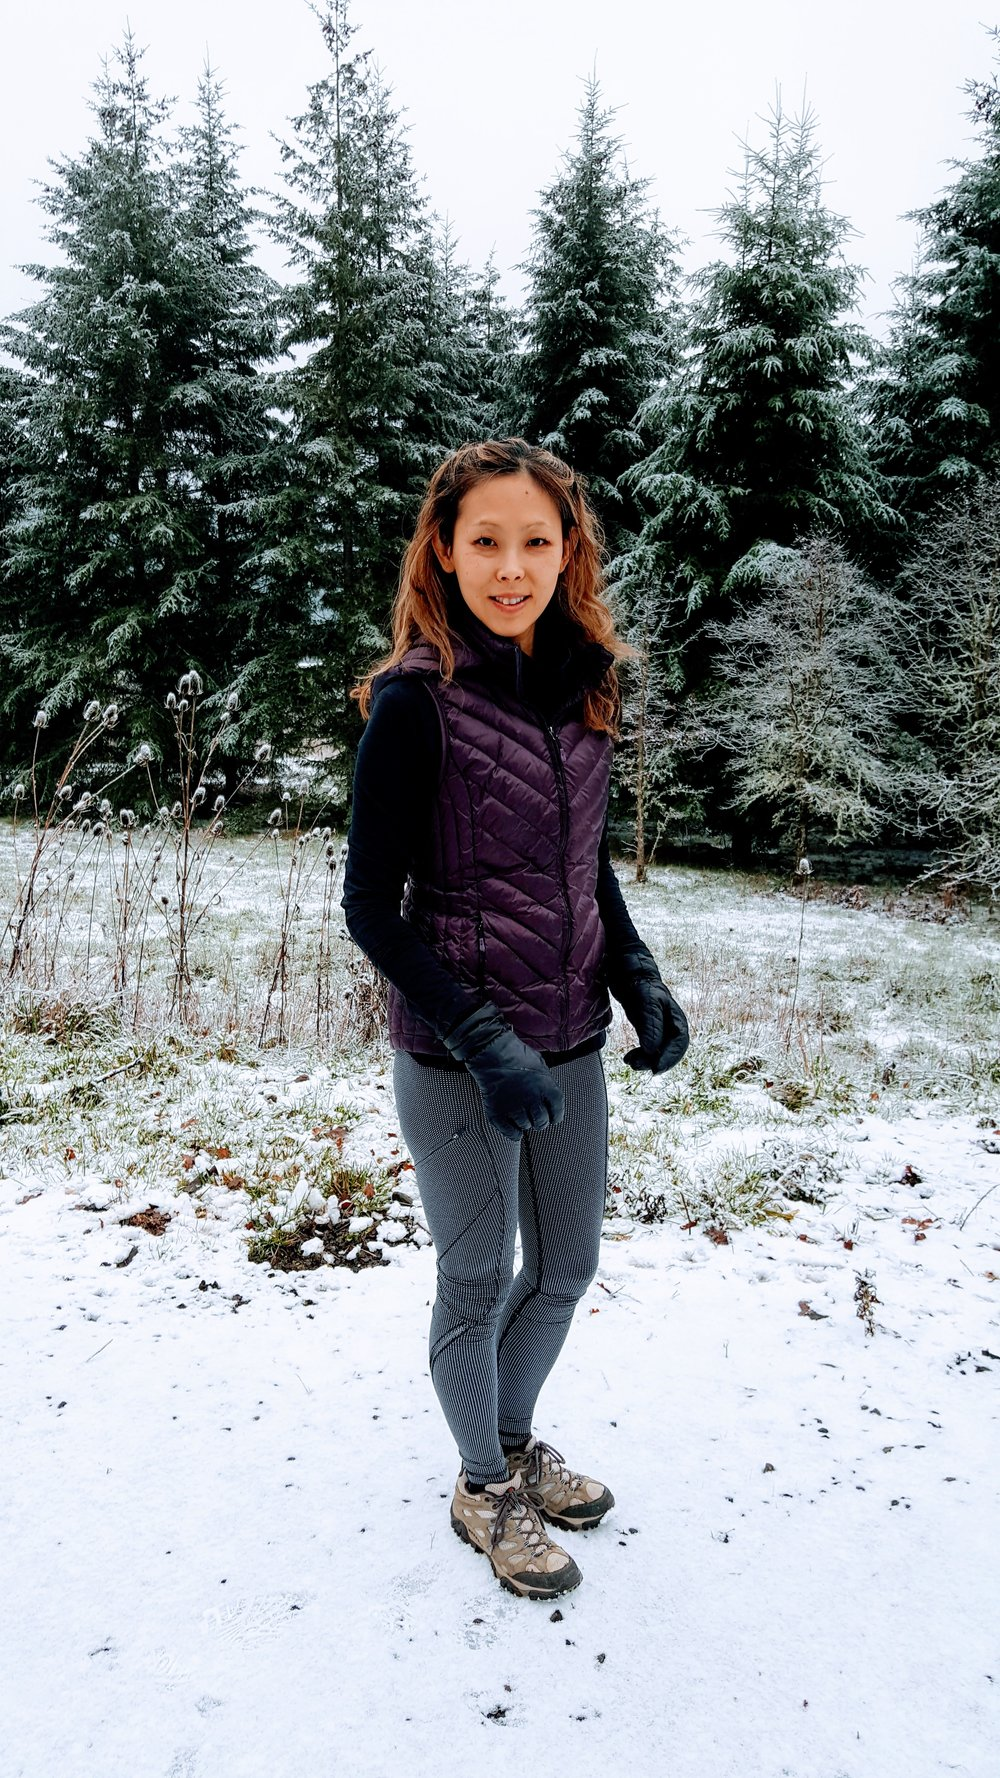 Winter running is more fun in Lululemon reflective tights!